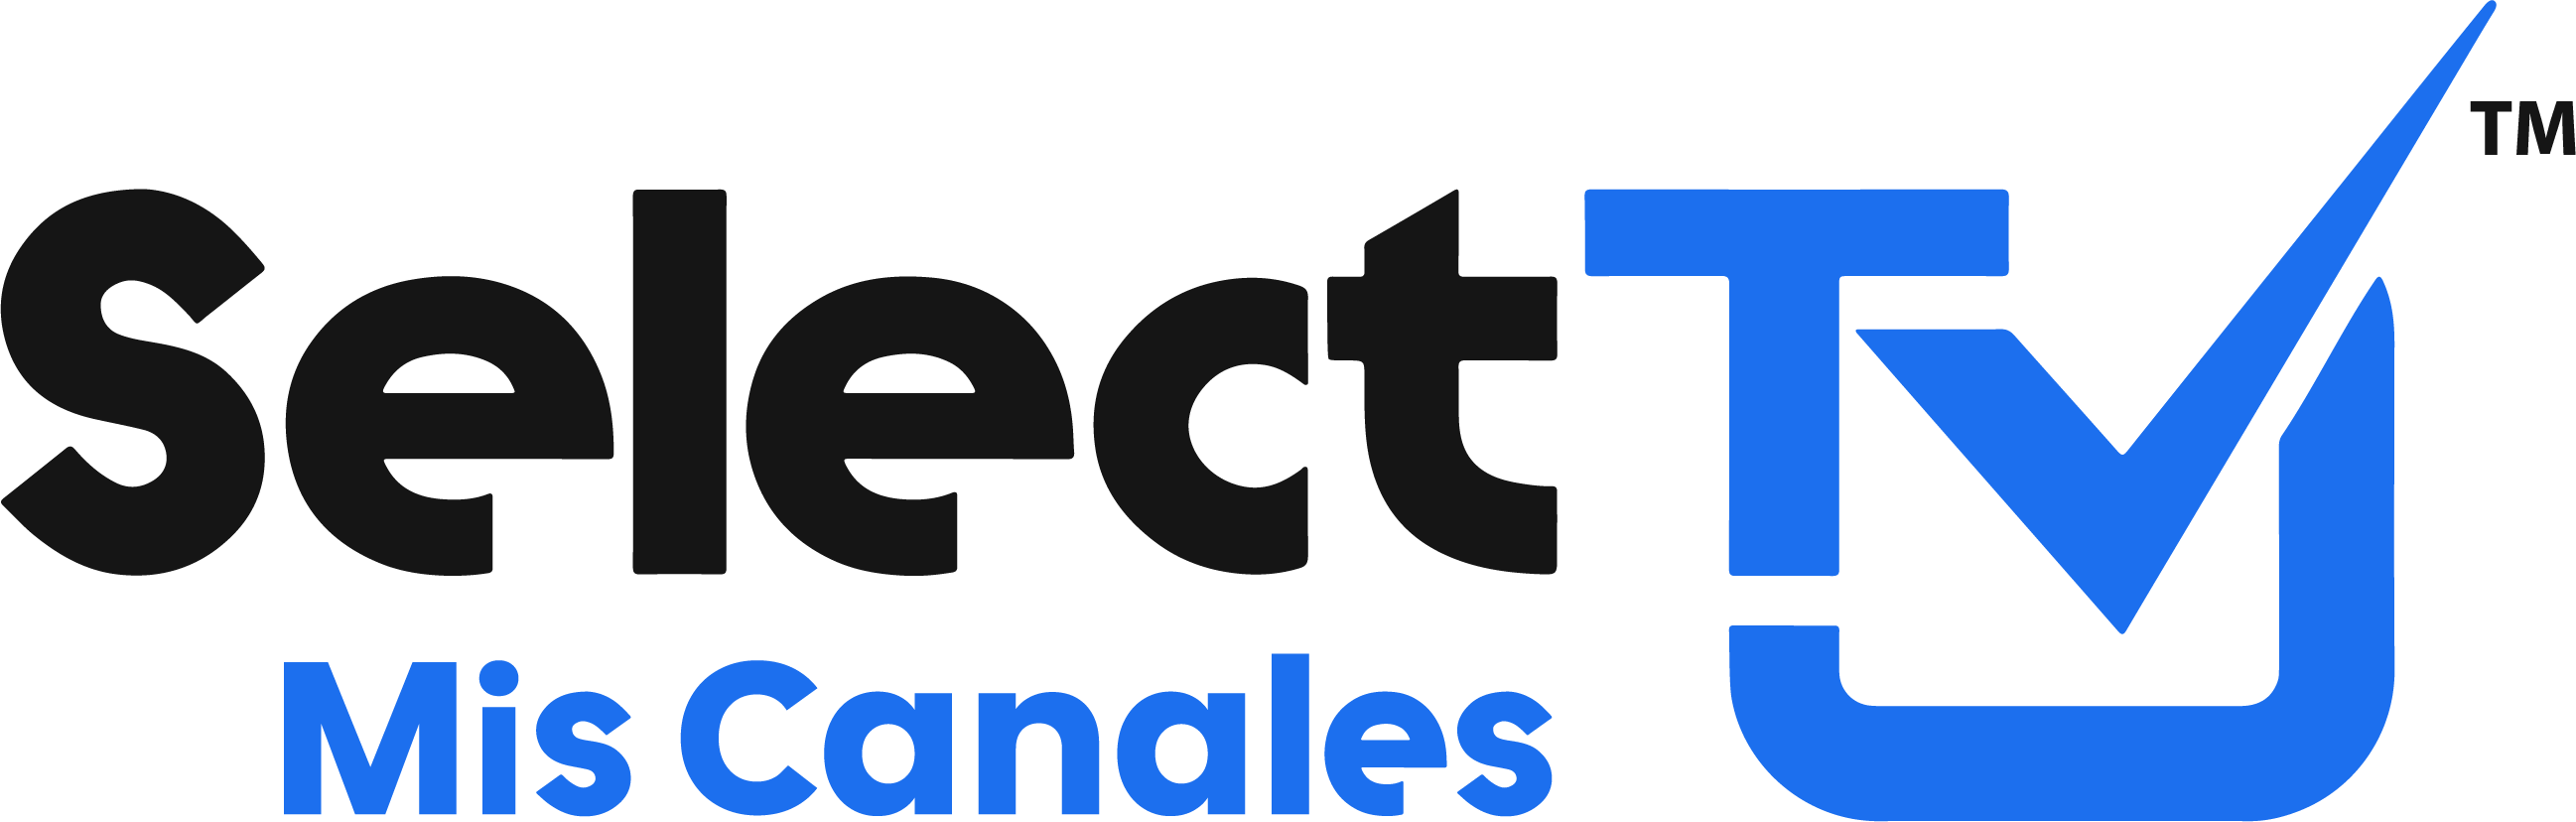 FreeCast Appeals to Hispanic Consumers with its New SelectTV Mis Canales Package 1